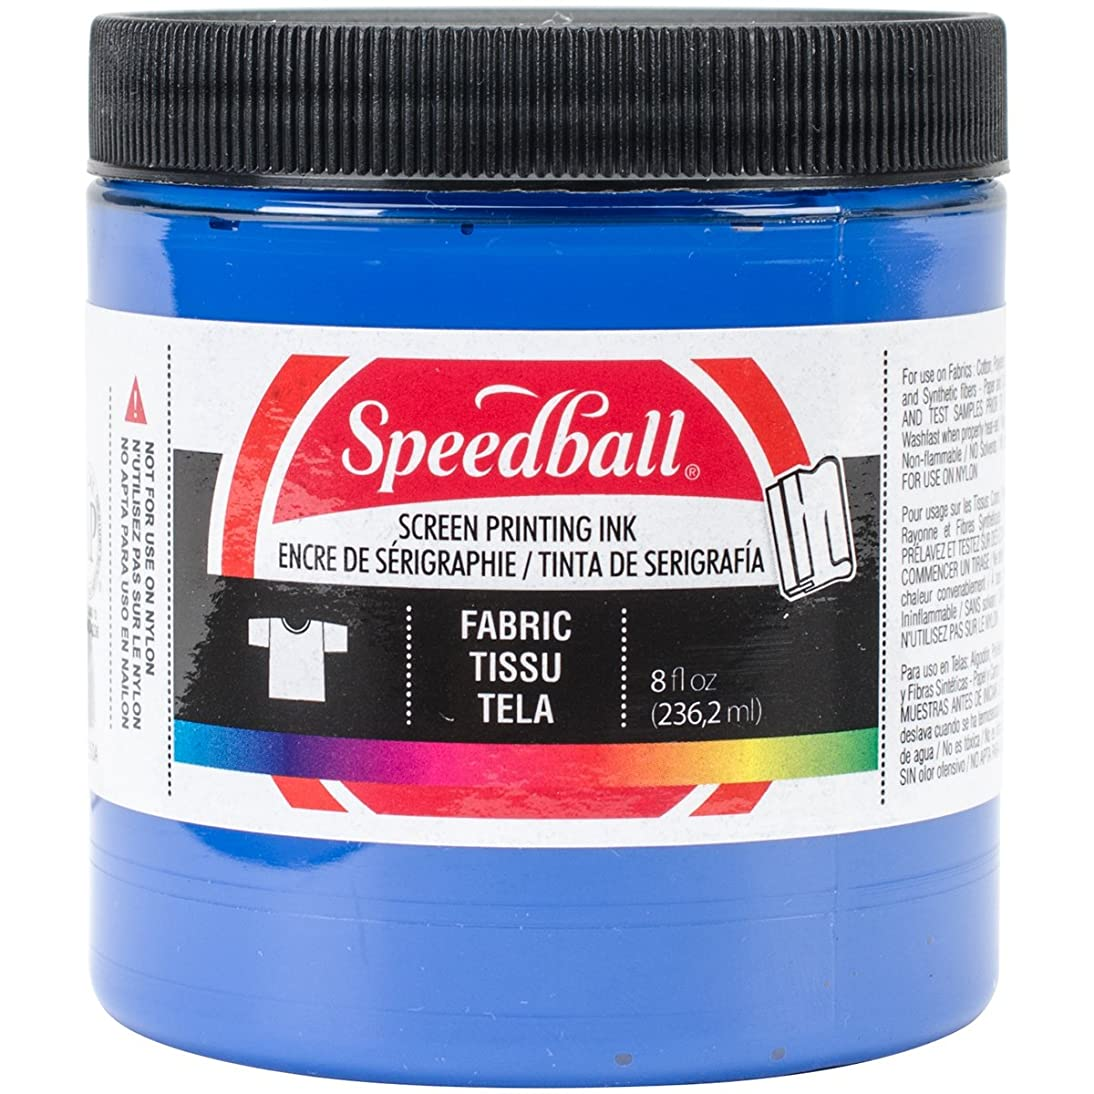 Speedball Art Products Fabric Screen Printing Ink, 8-Ounce, Blue (465282)